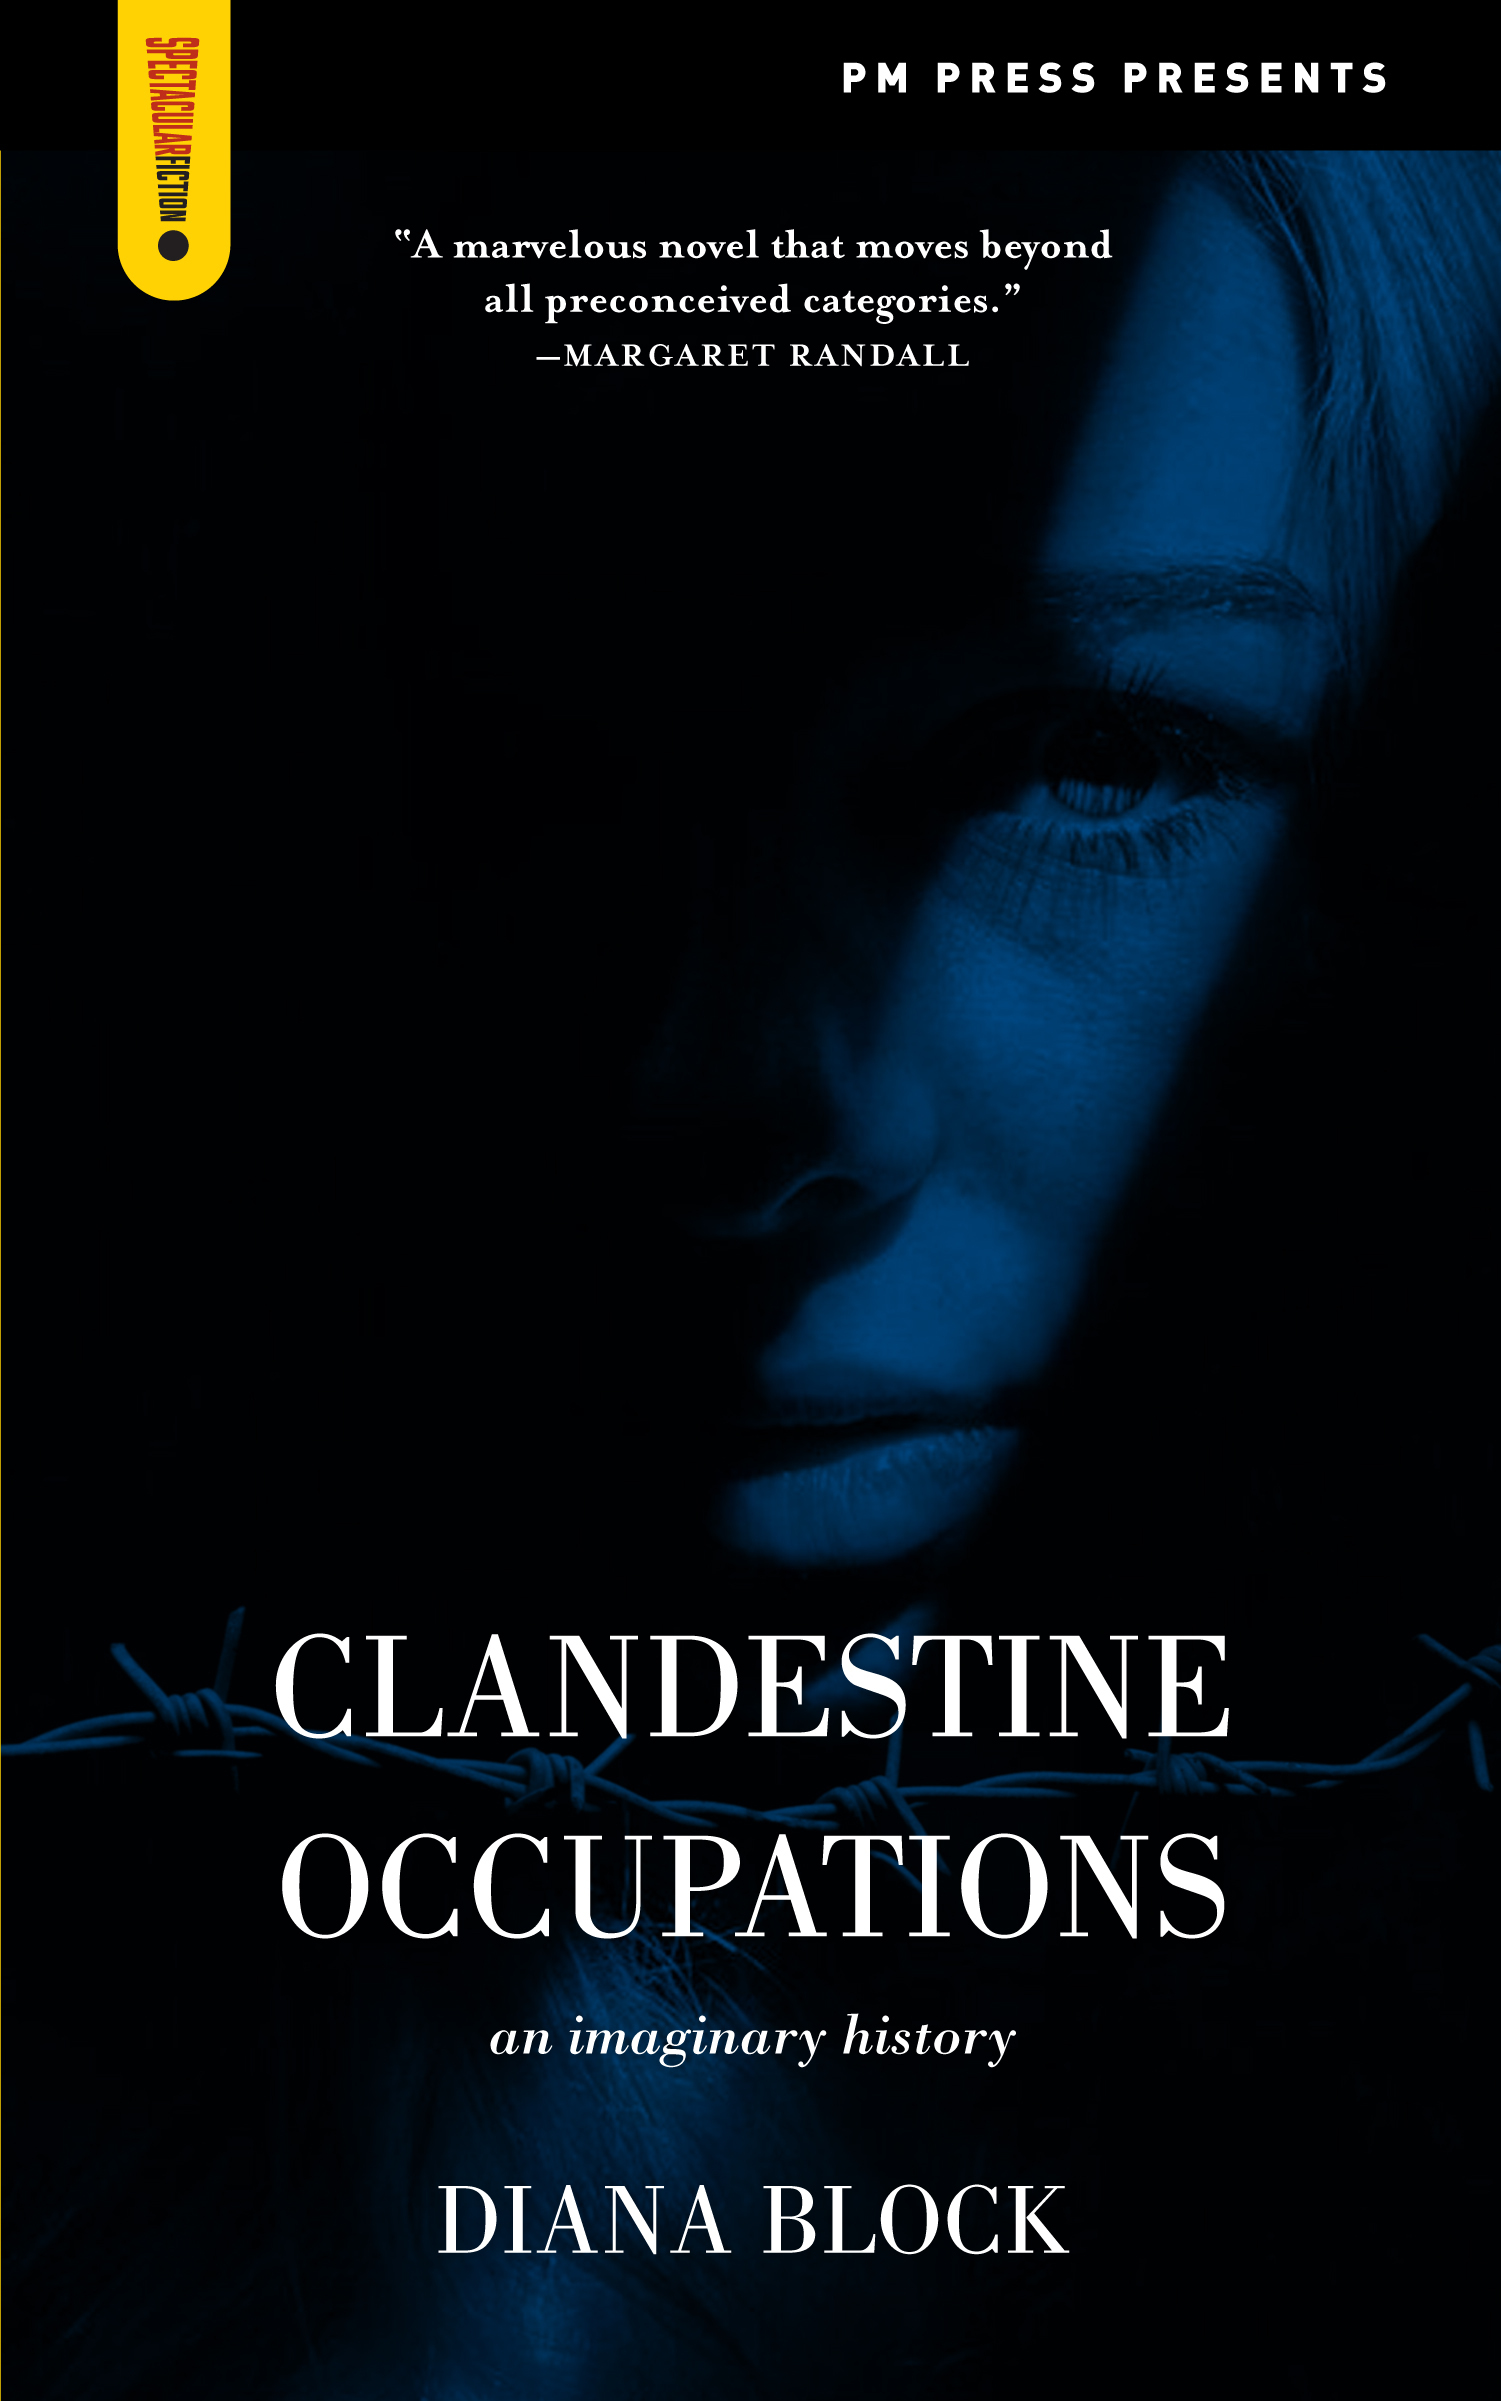 Clandestine Occupations by Diana Block, Book Release Party October 2, 2015 7pm